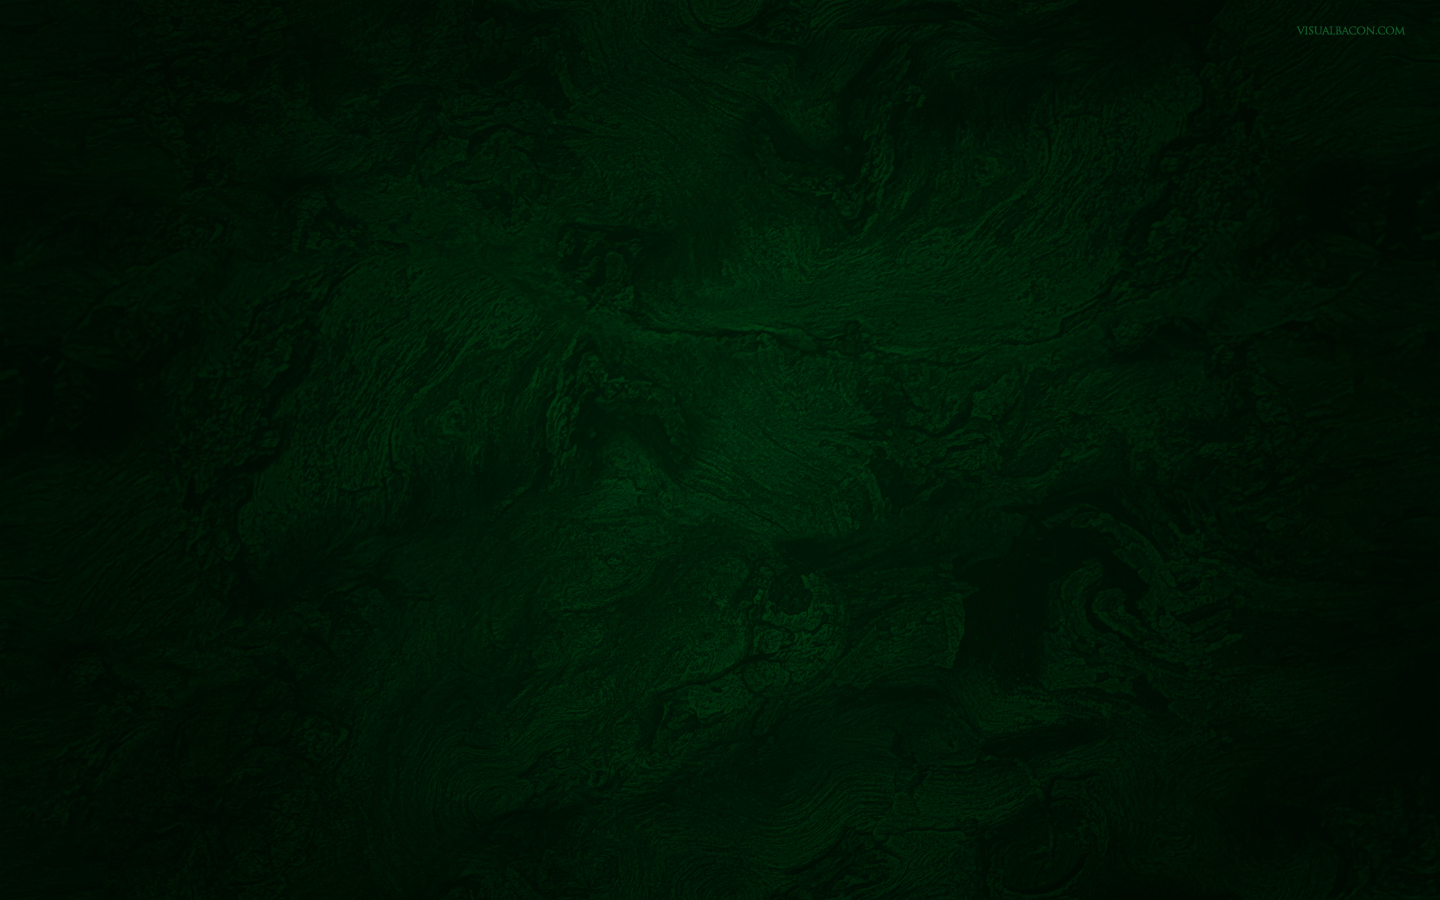 green and black wallpaper for android